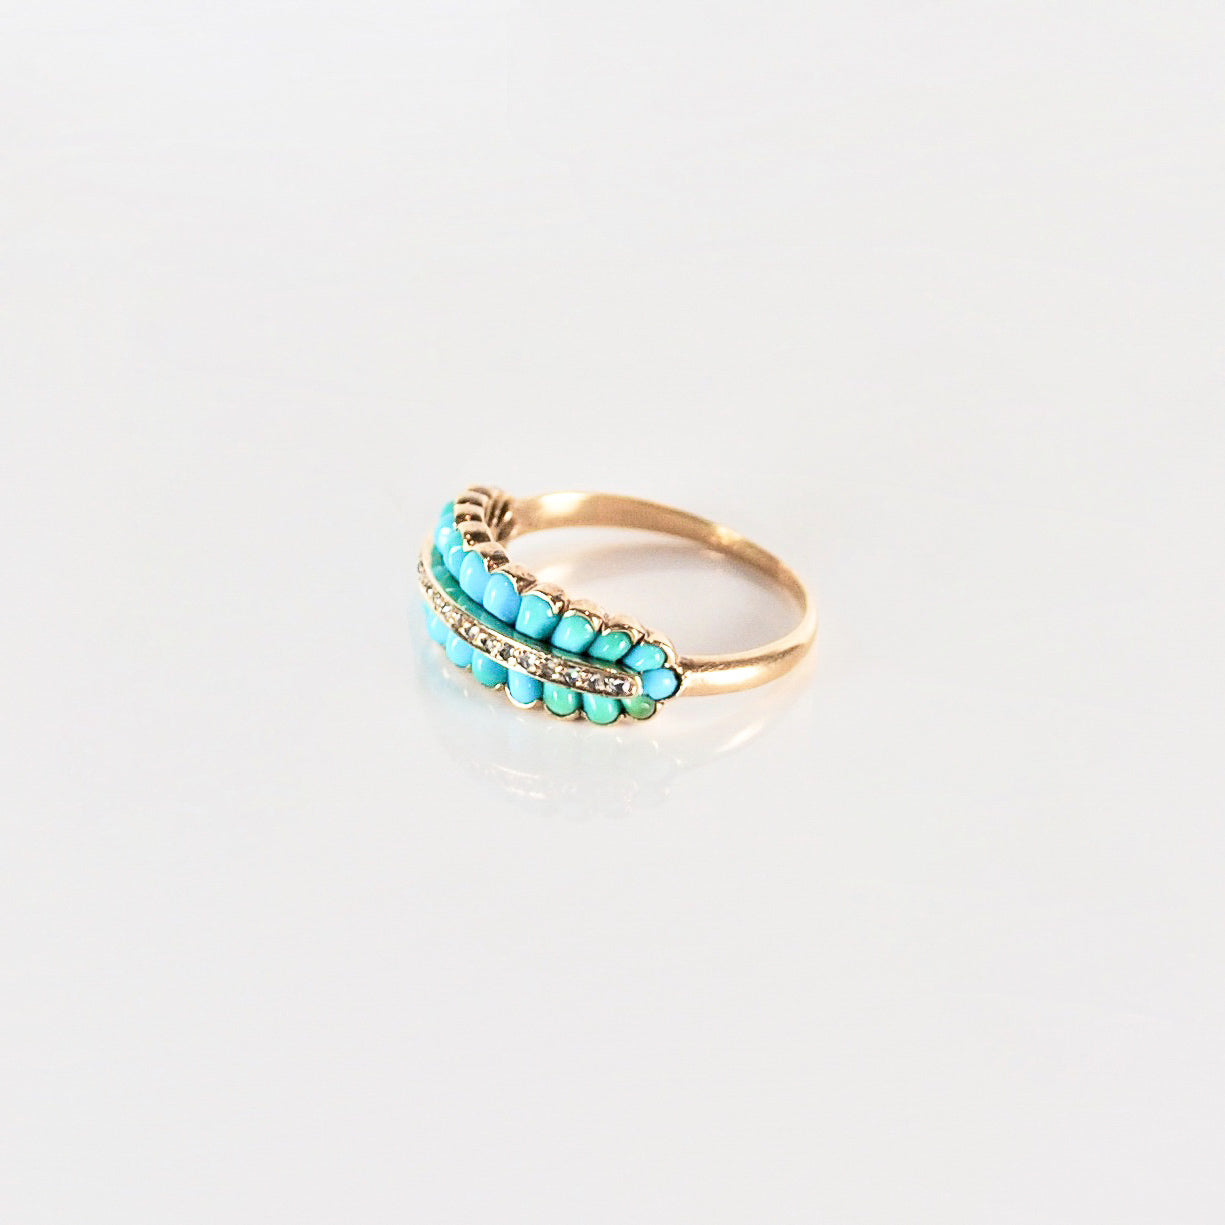 Two row Turquoise 18ct Gold ring inset with tiny diamonds c.1920s